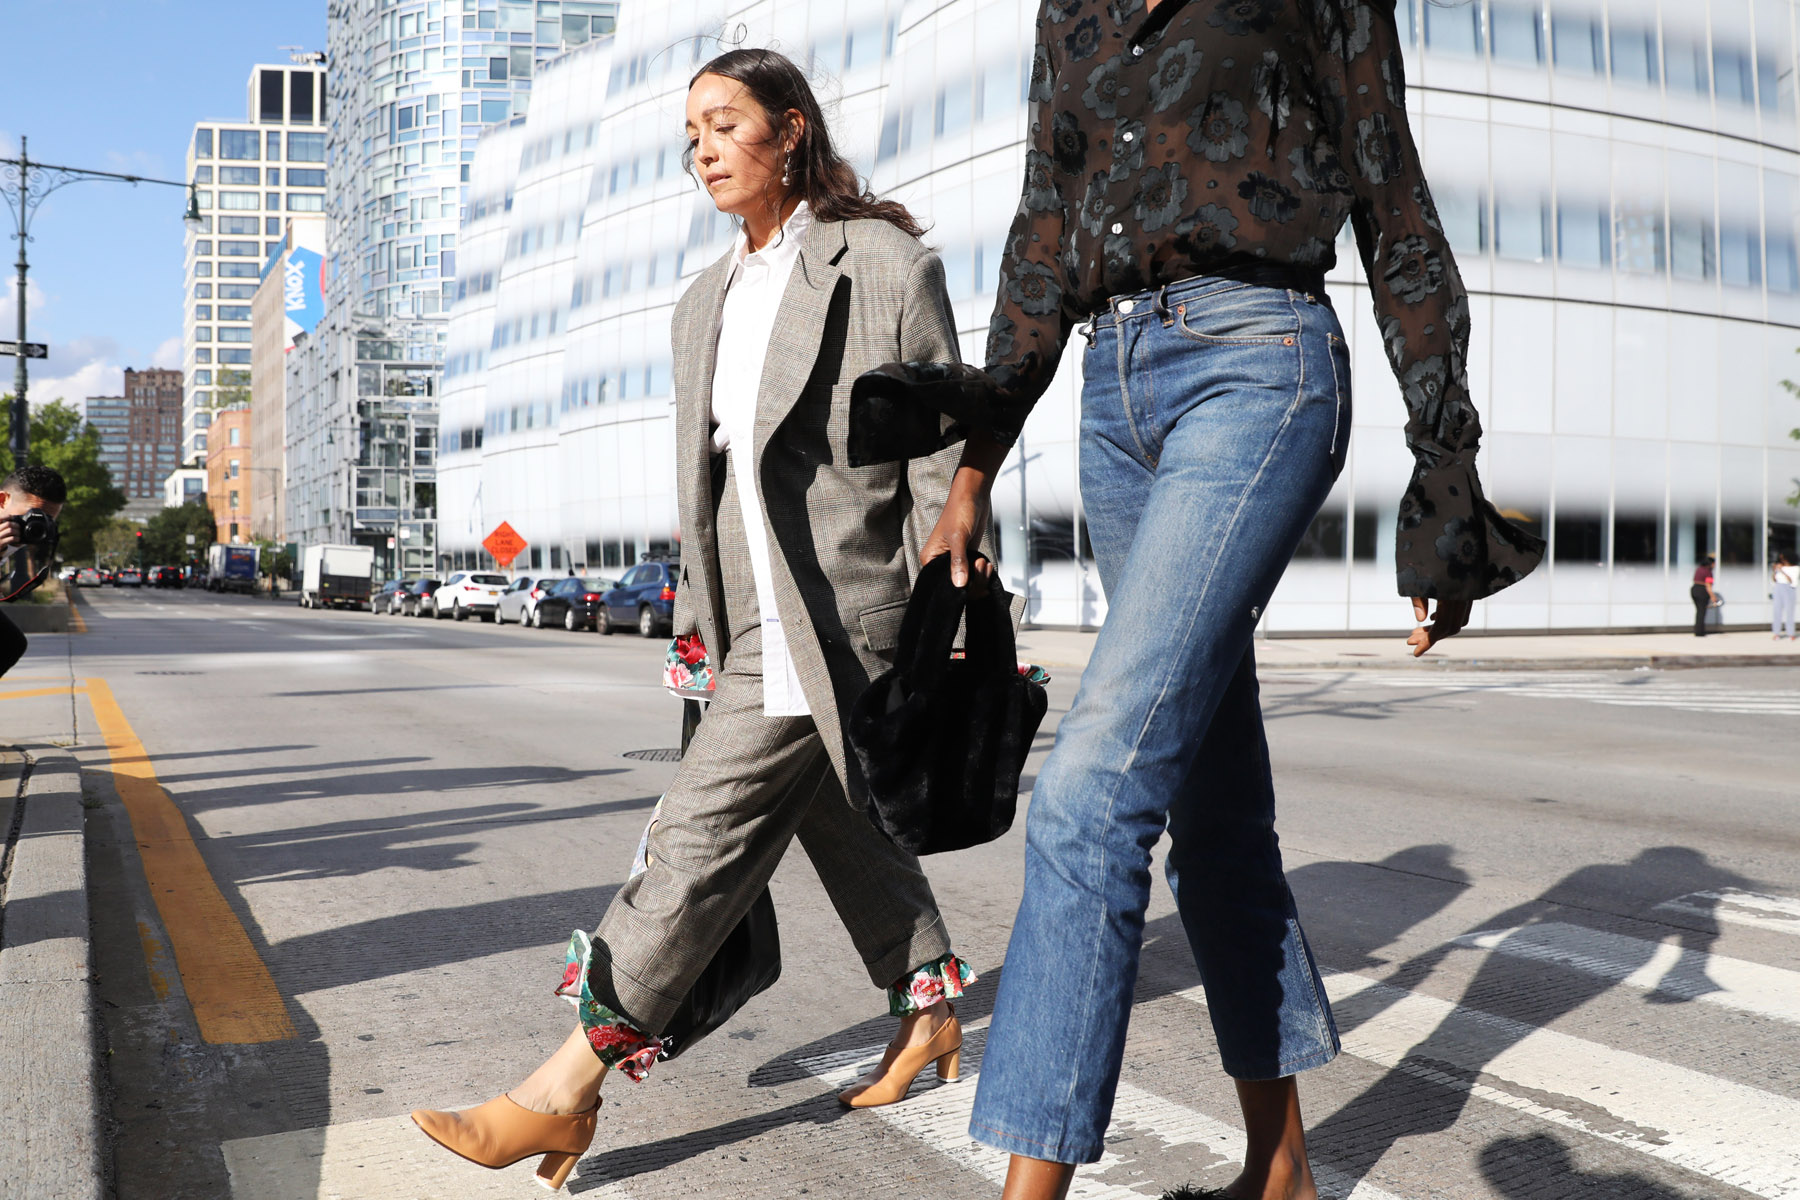 New York Fashion Week Street Style Spring 2018 Day 2 by Myoungsoo Lee